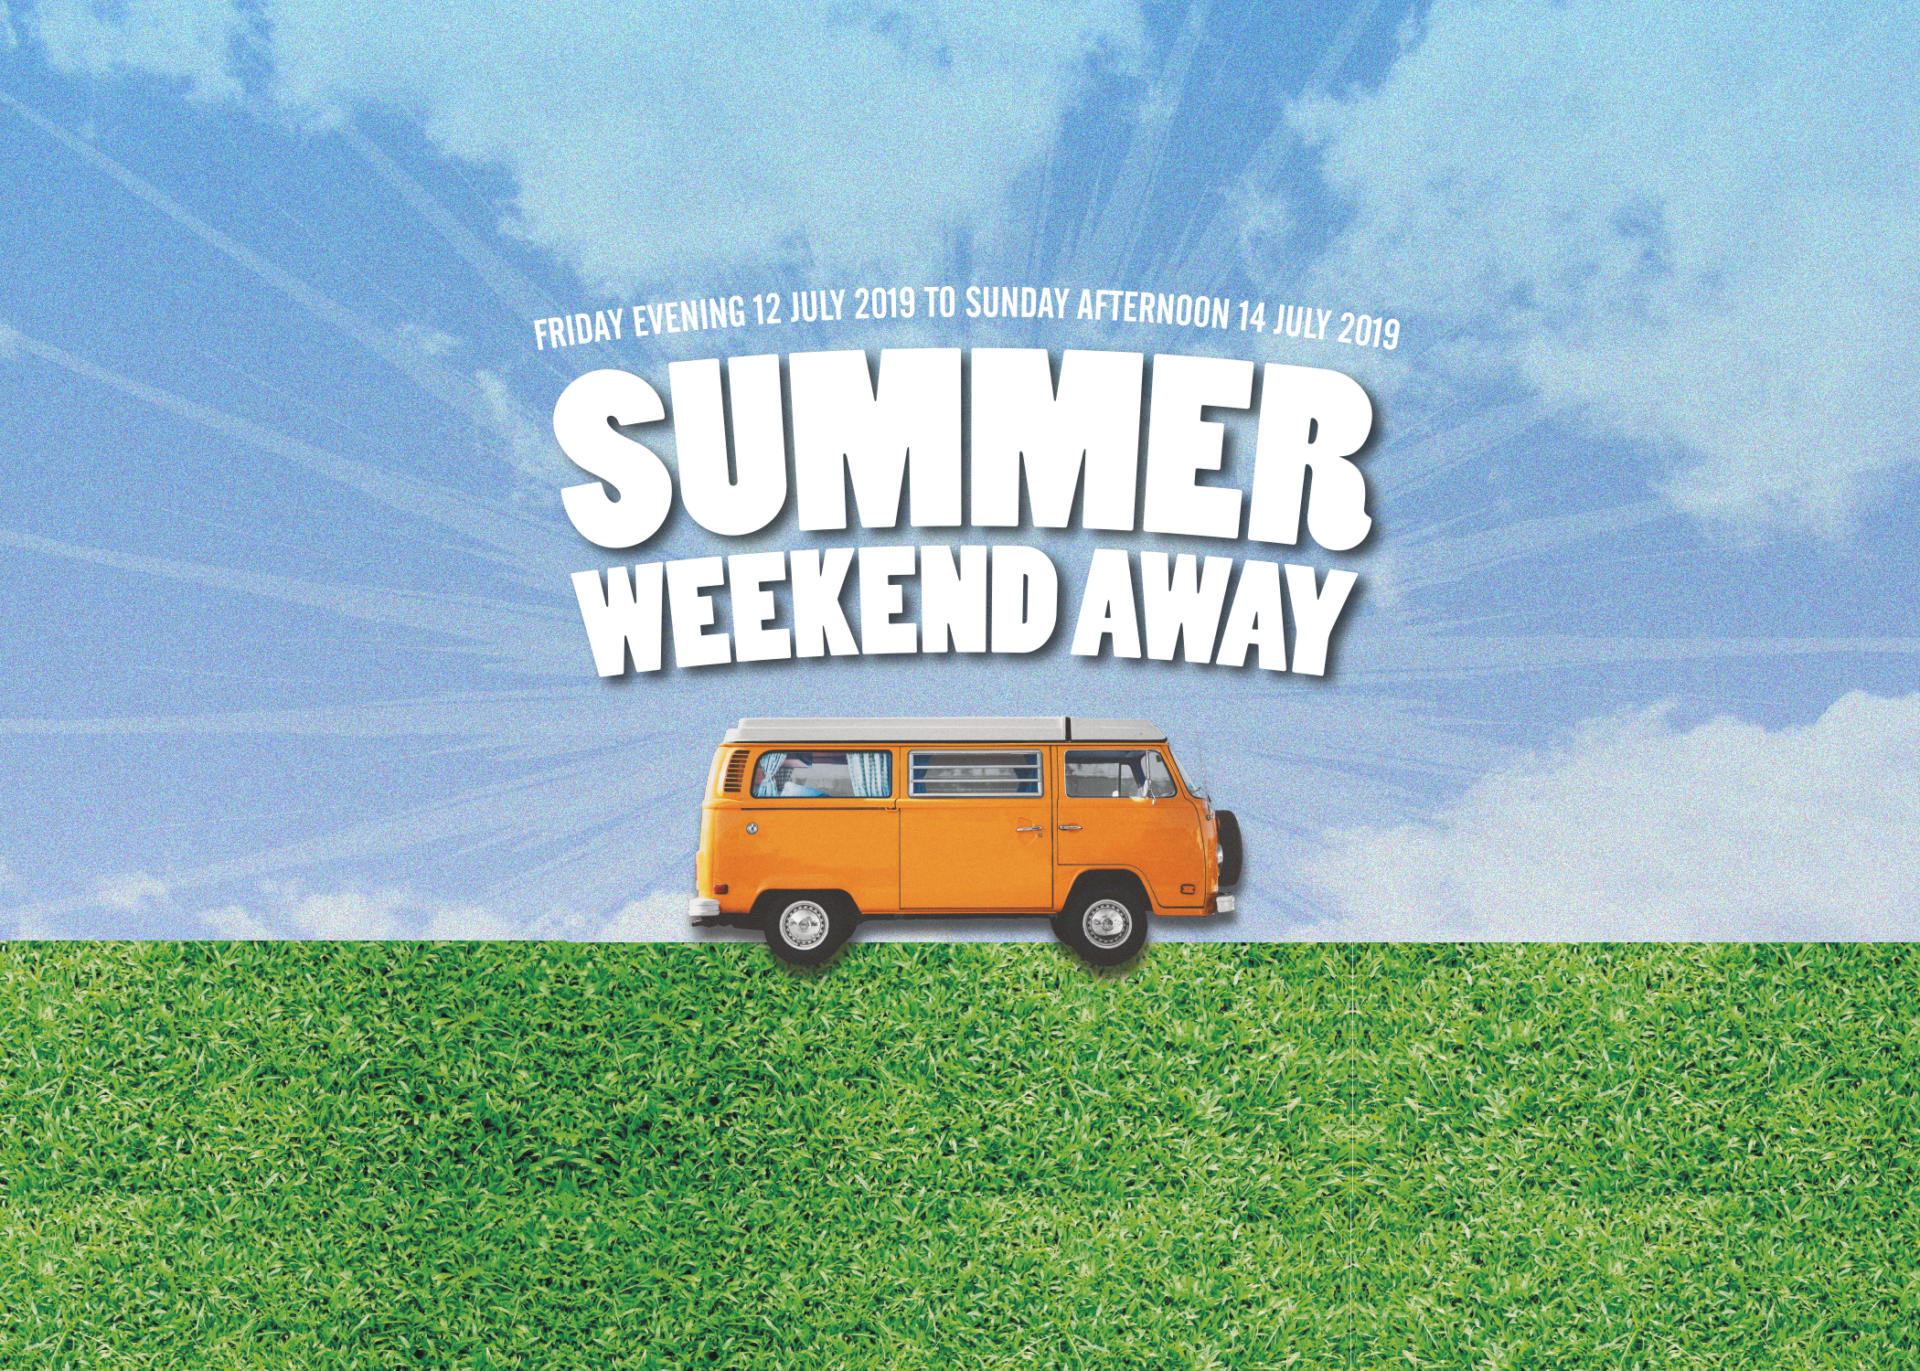 f839c44577e SCF-Summer-Weekend-Away-Web-Banner-v1-with-grass (1) - Solihull ...